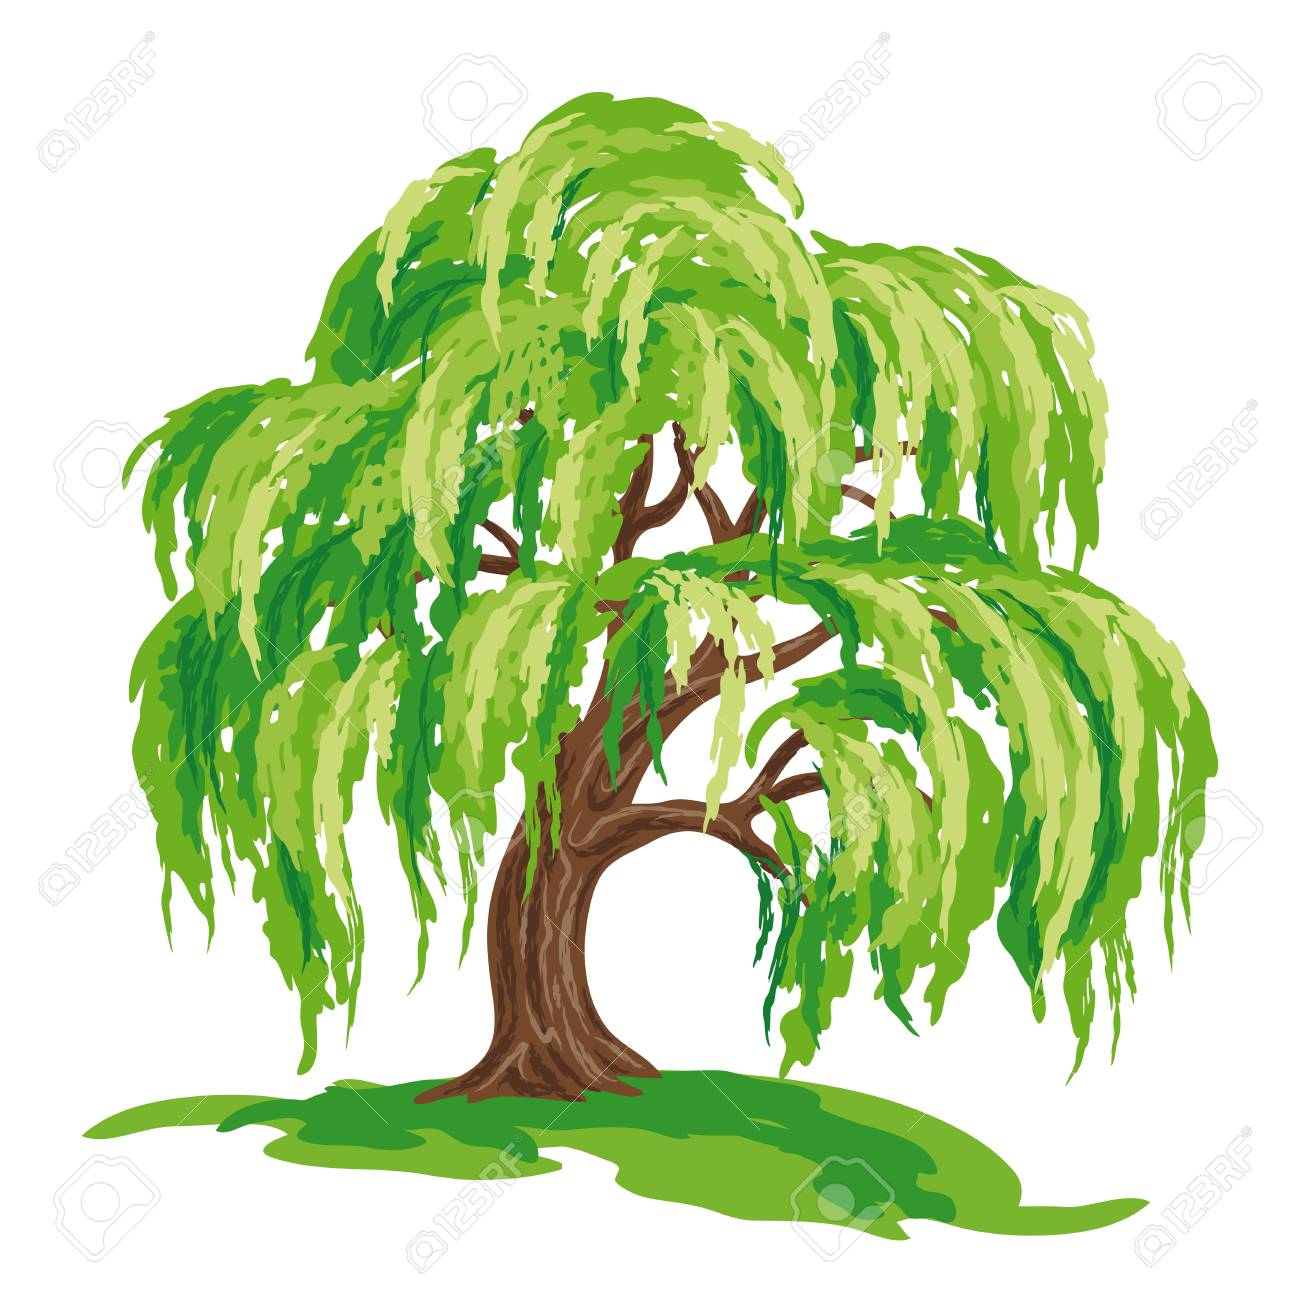 hight resolution of vector drawing of willow tree eps8 stock vector 98052977